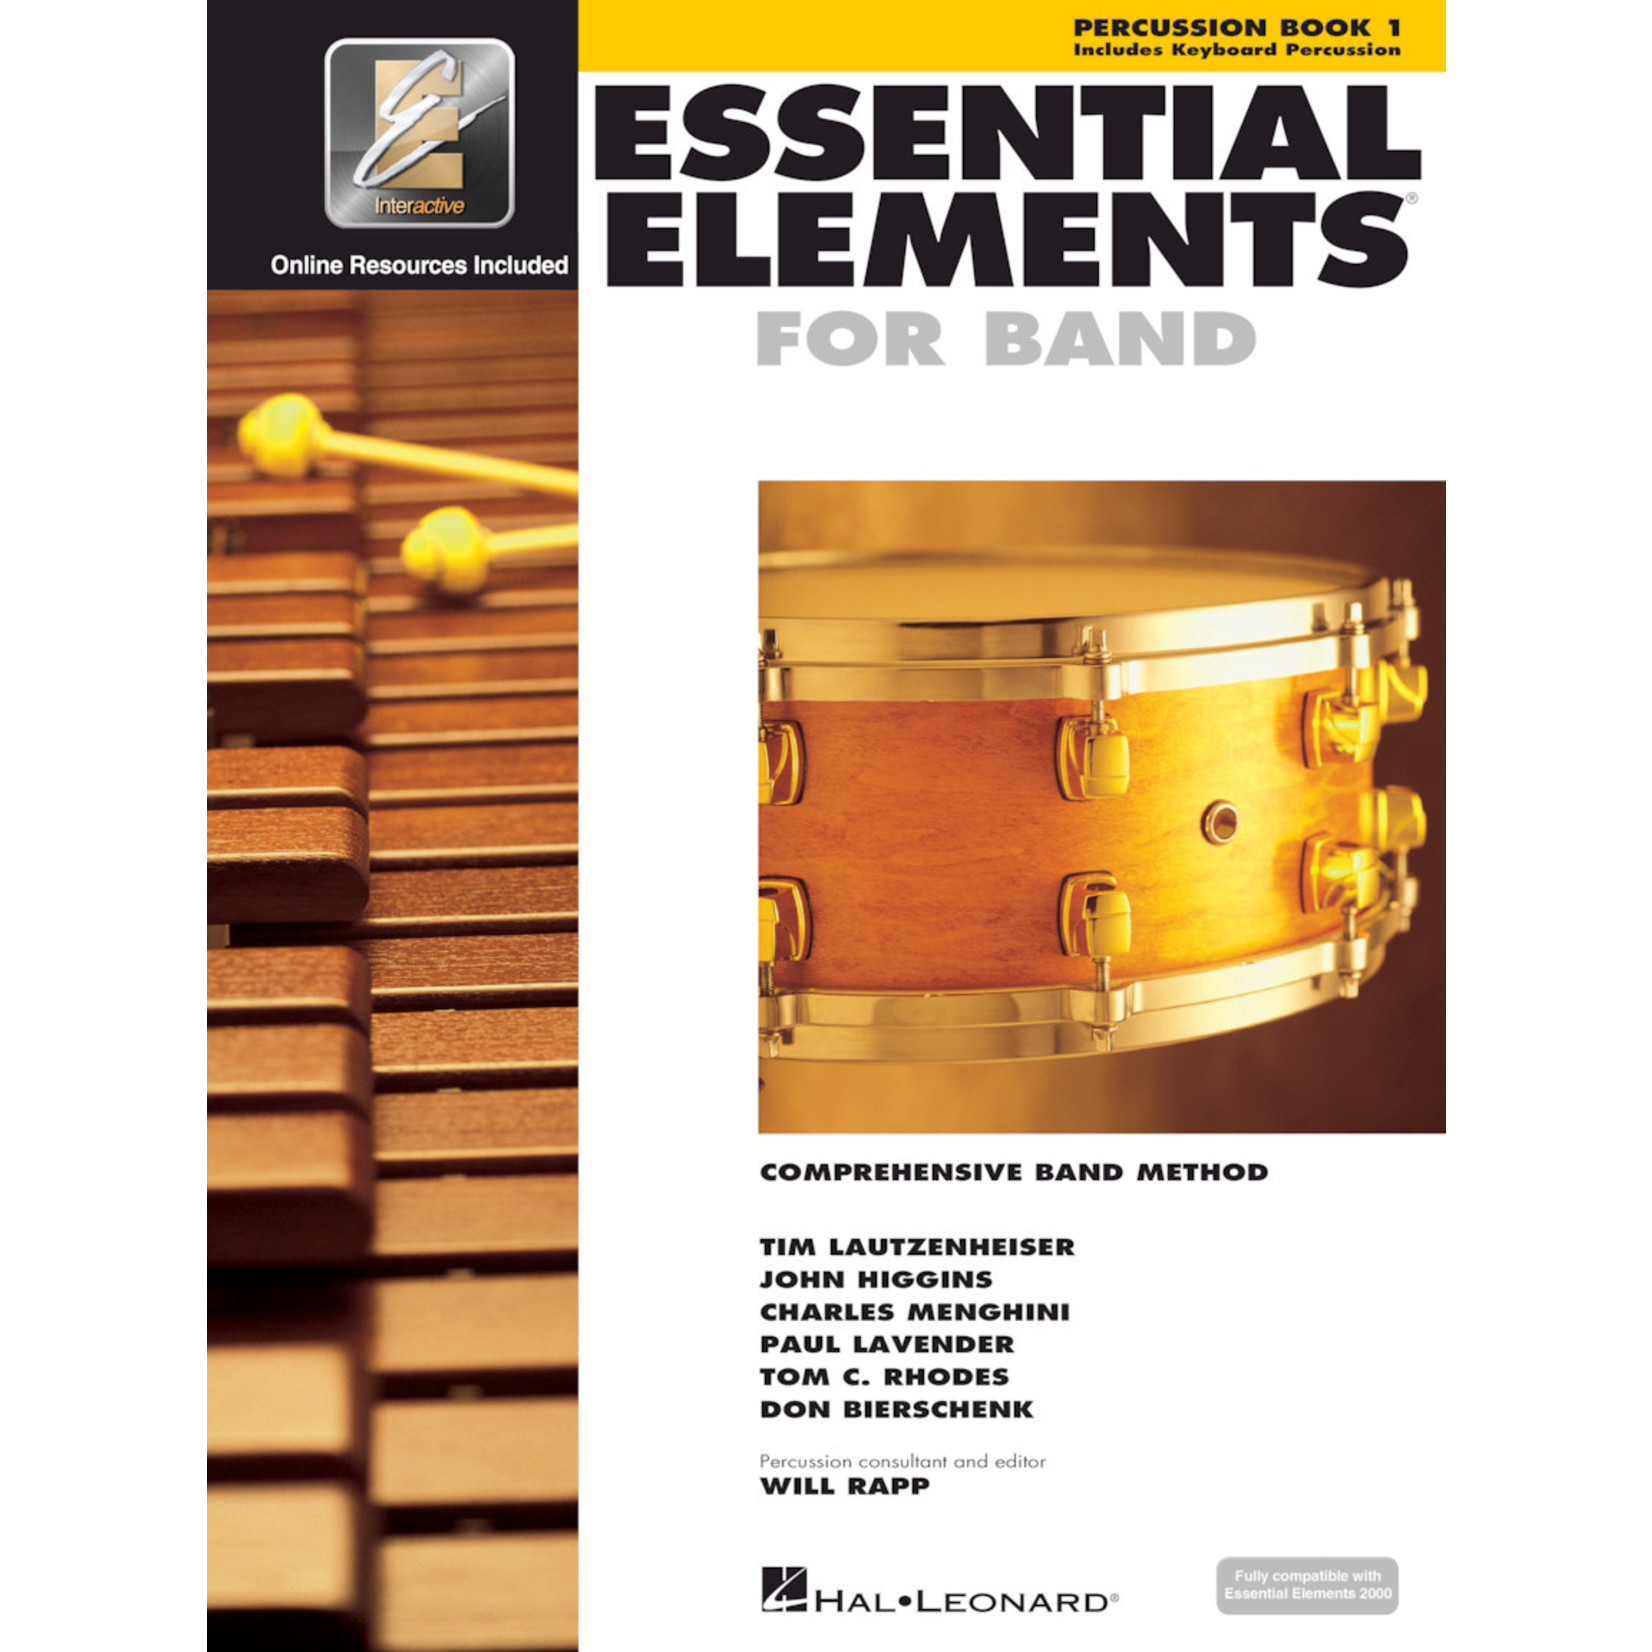 Hal Leonard Essential Elements for Band Percussion Book 1